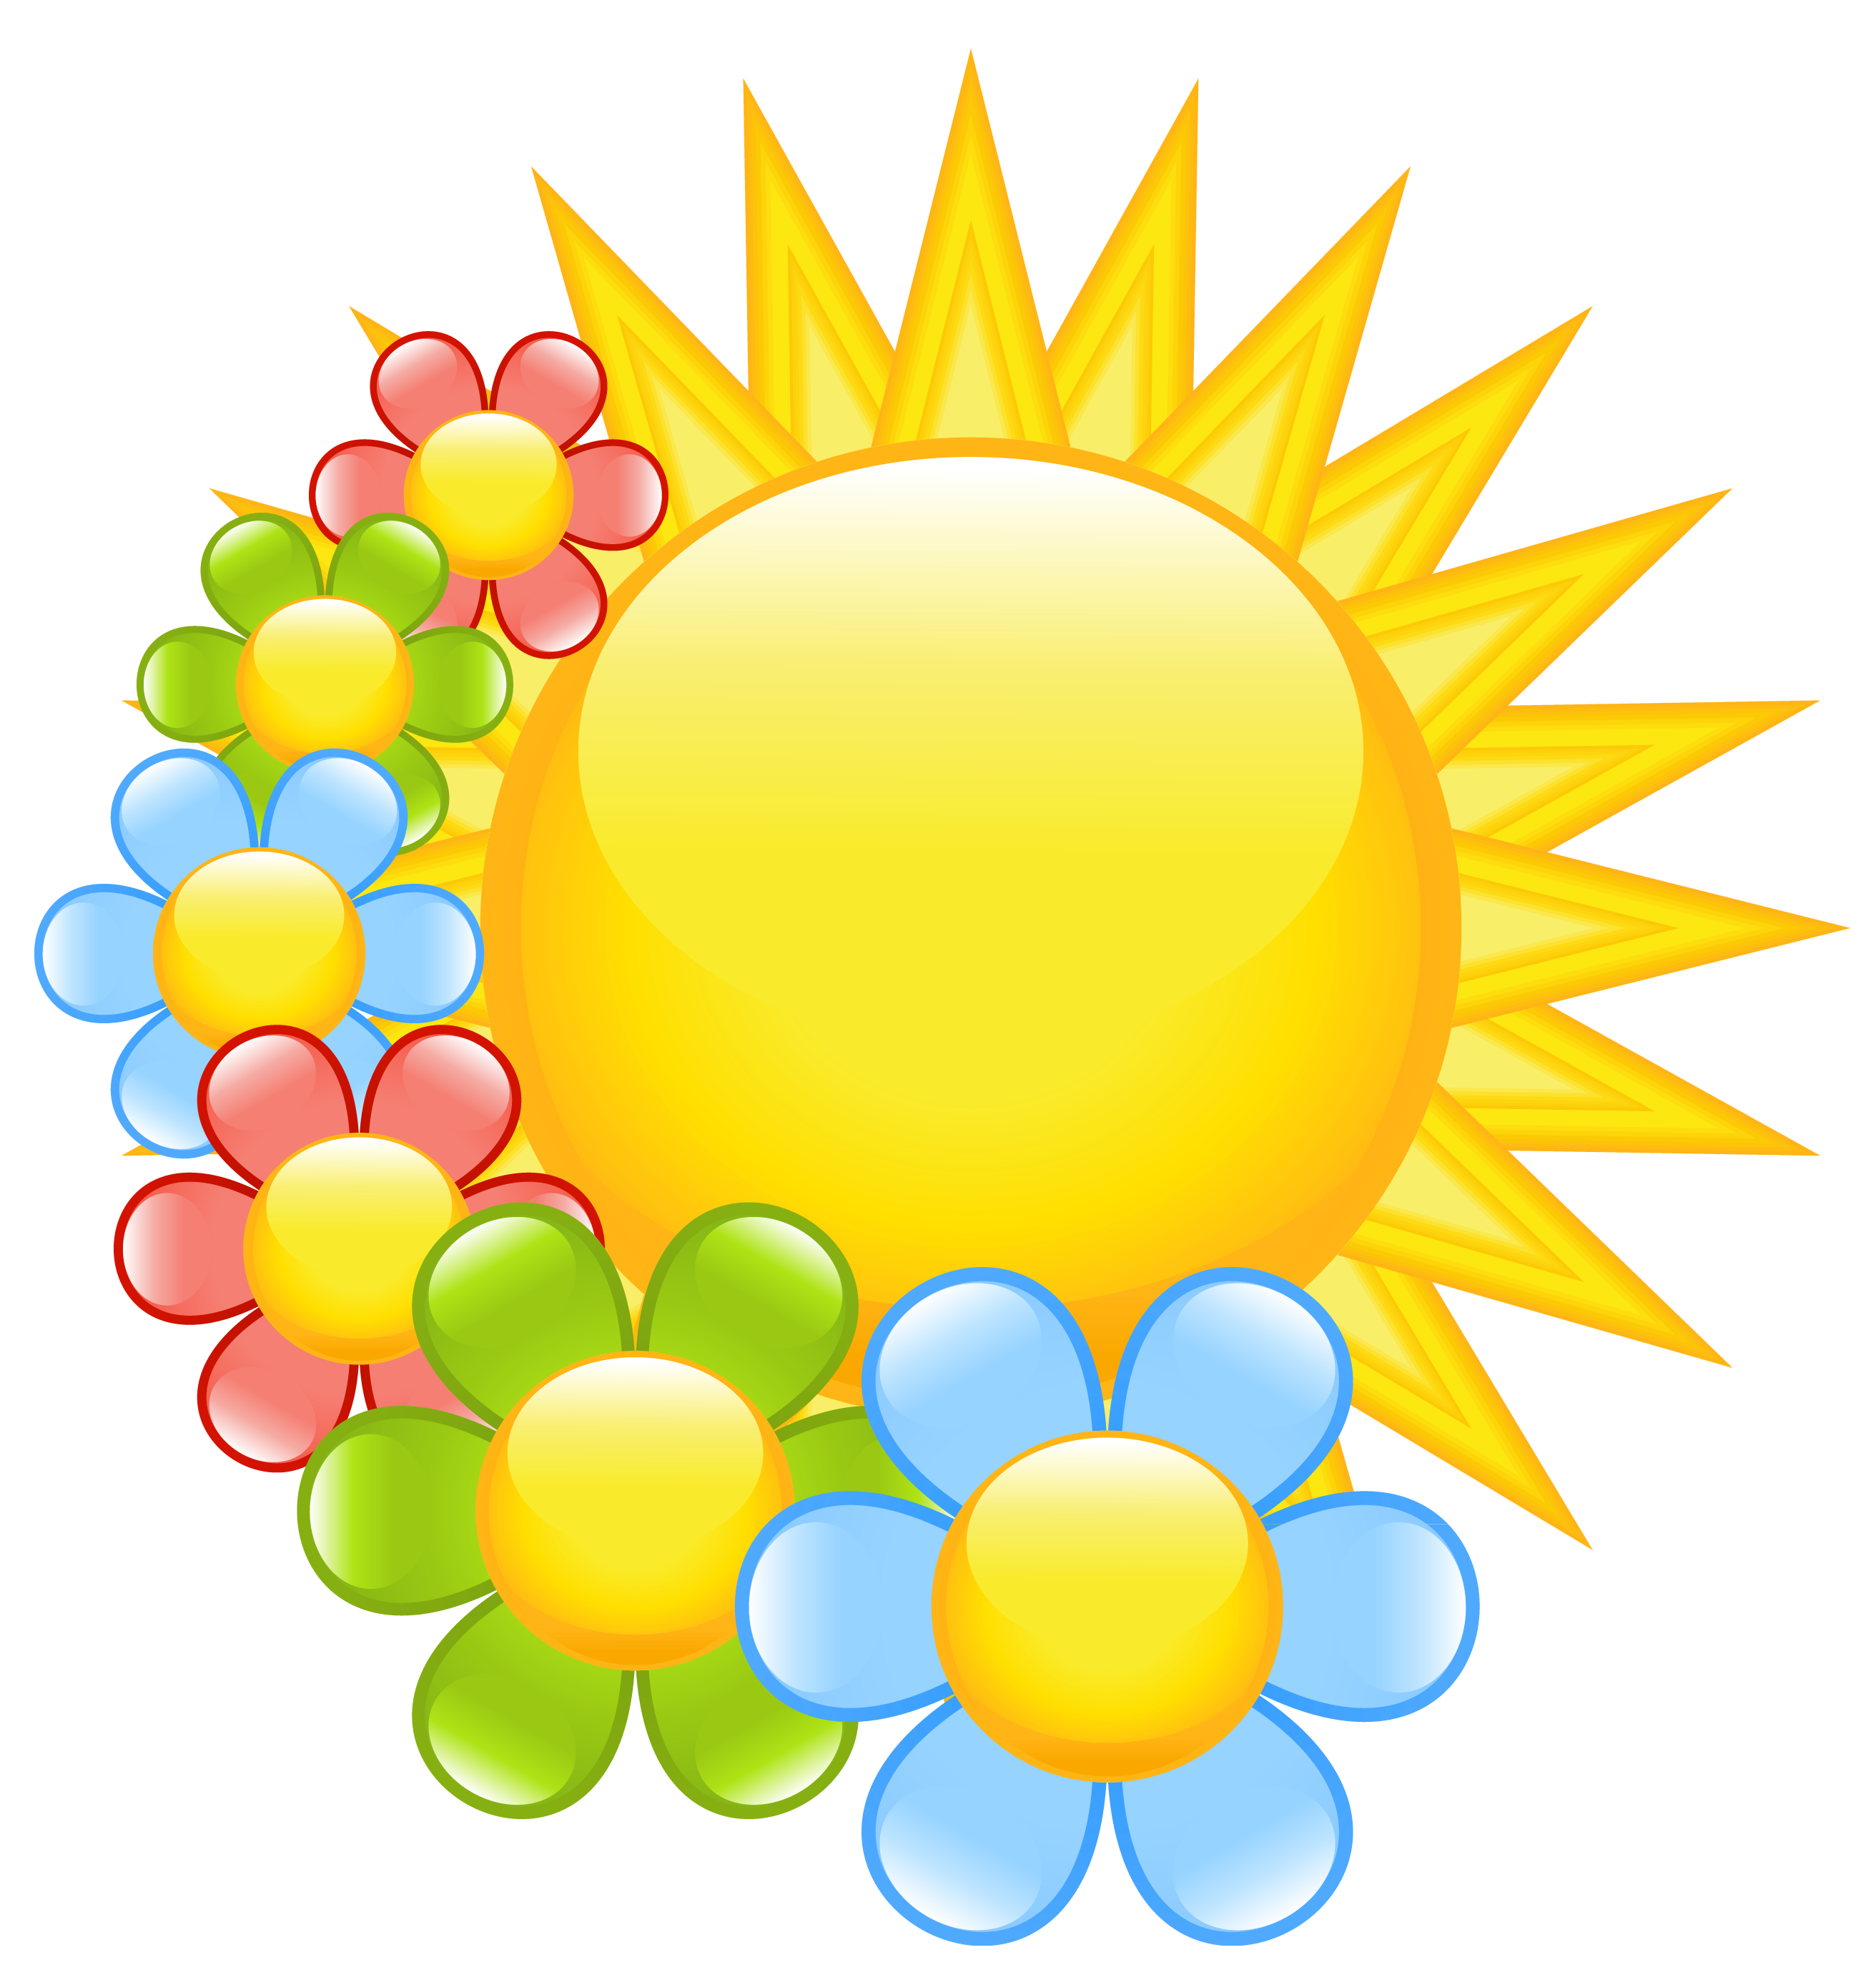 Sun with flowers gallery. Hills clipart spring